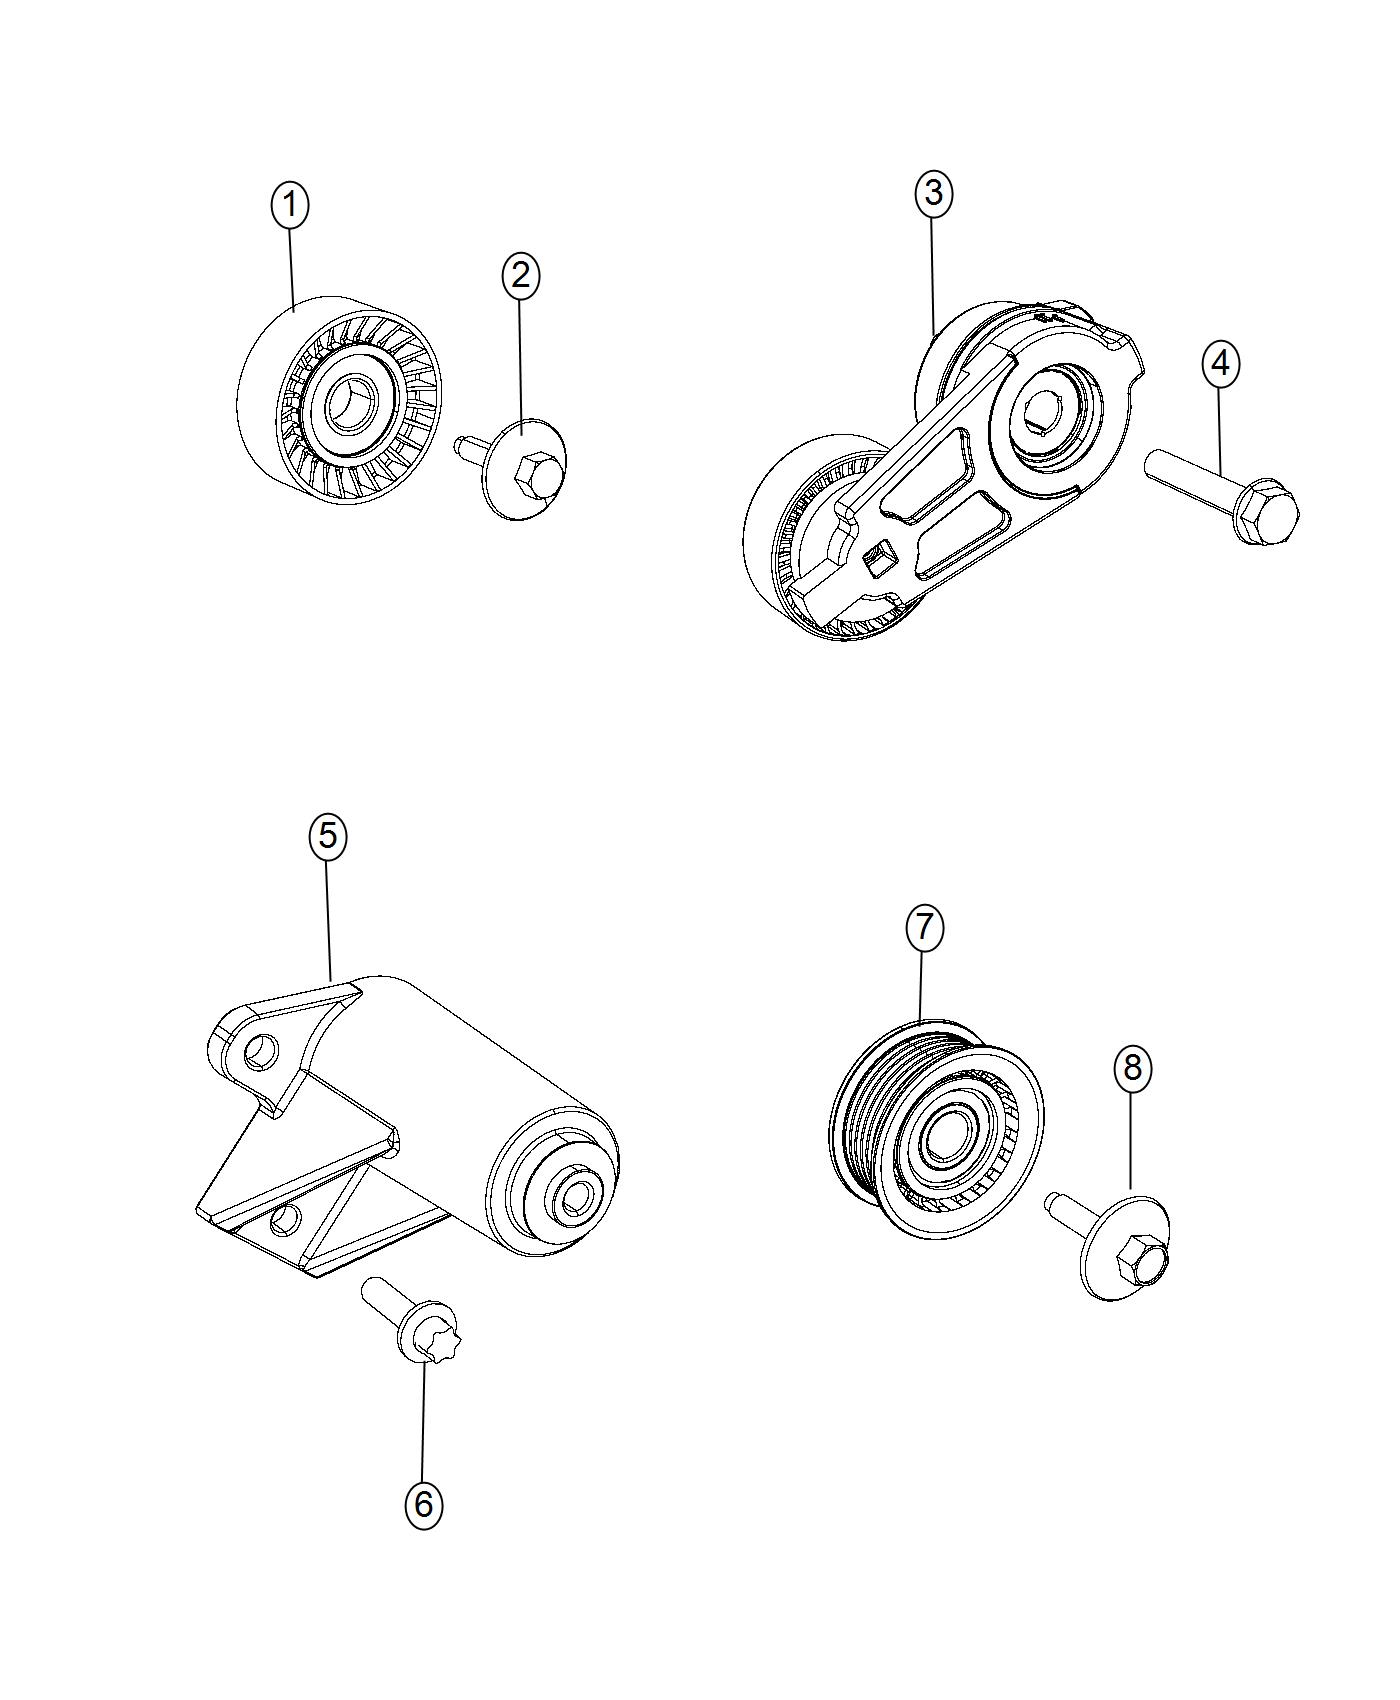 2017 Jeep Grand Cherokee Pulley. Idler. Related, pulleys